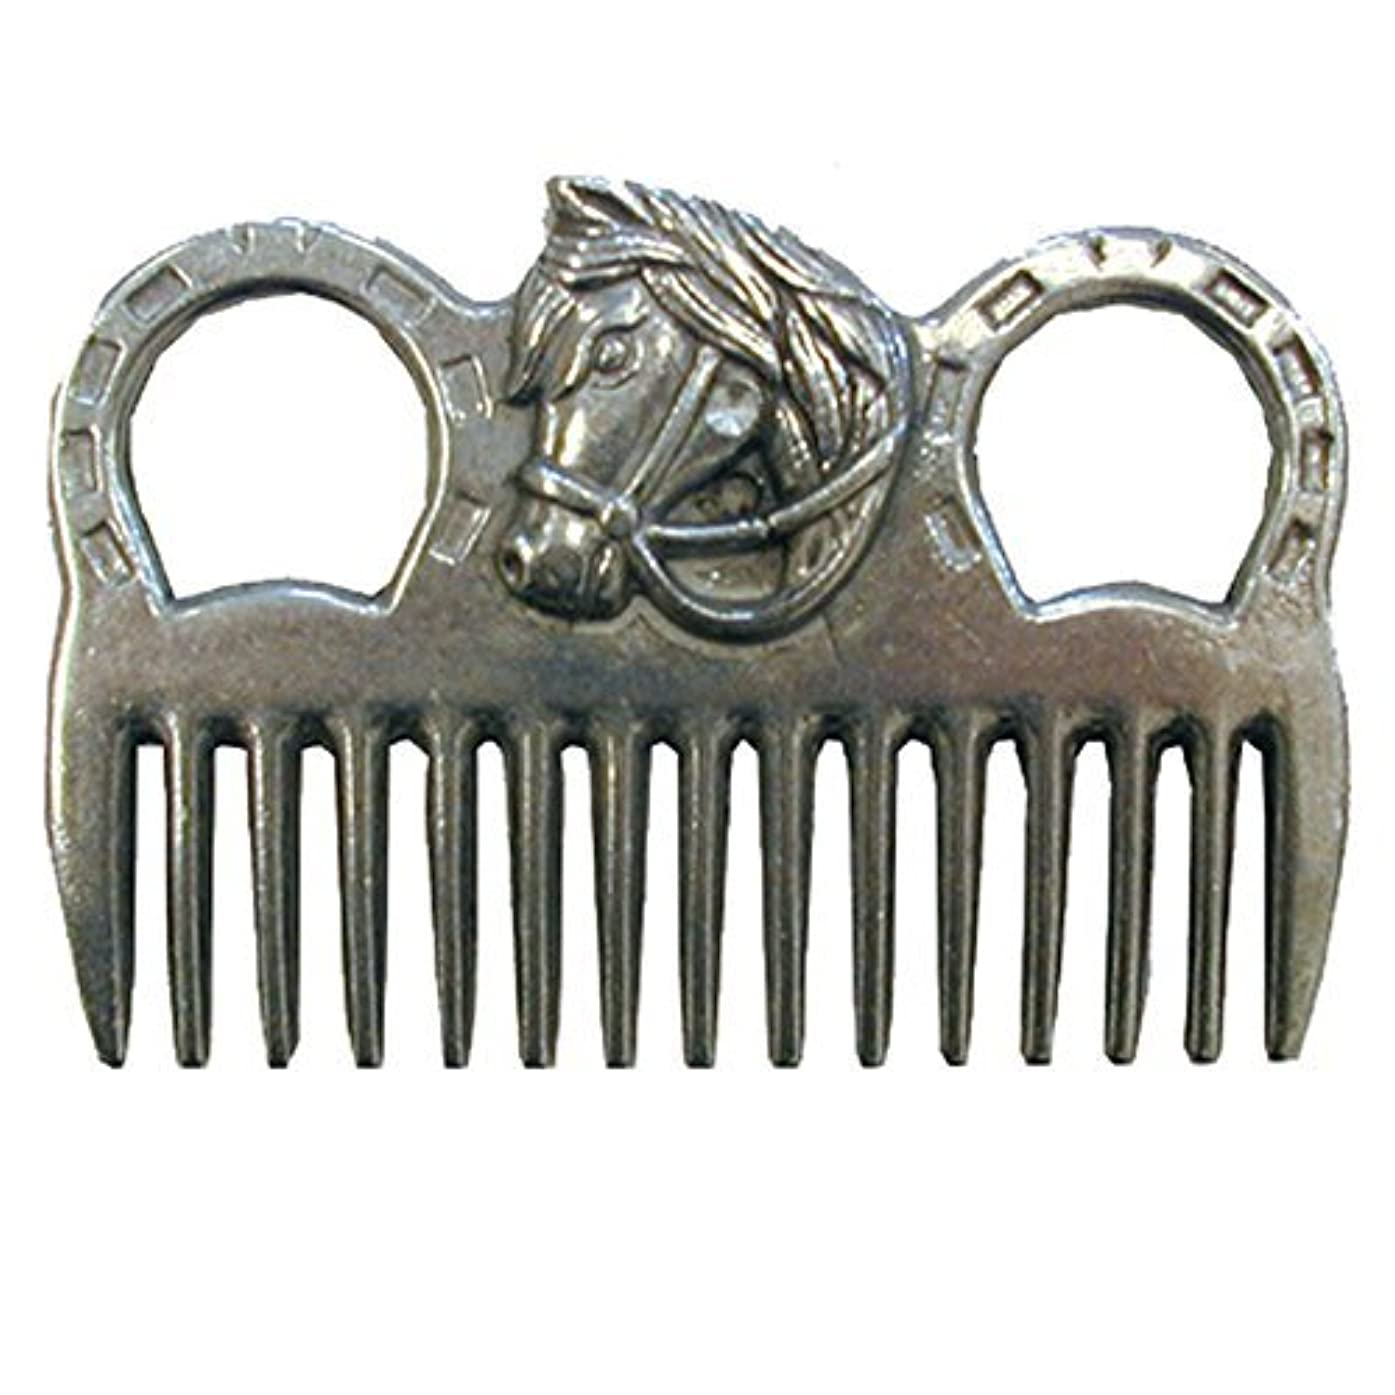 同等の隠すウィスキーIntrepid International - MANE COMB ALUMINUM W/HORSEHEAD [並行輸入品]